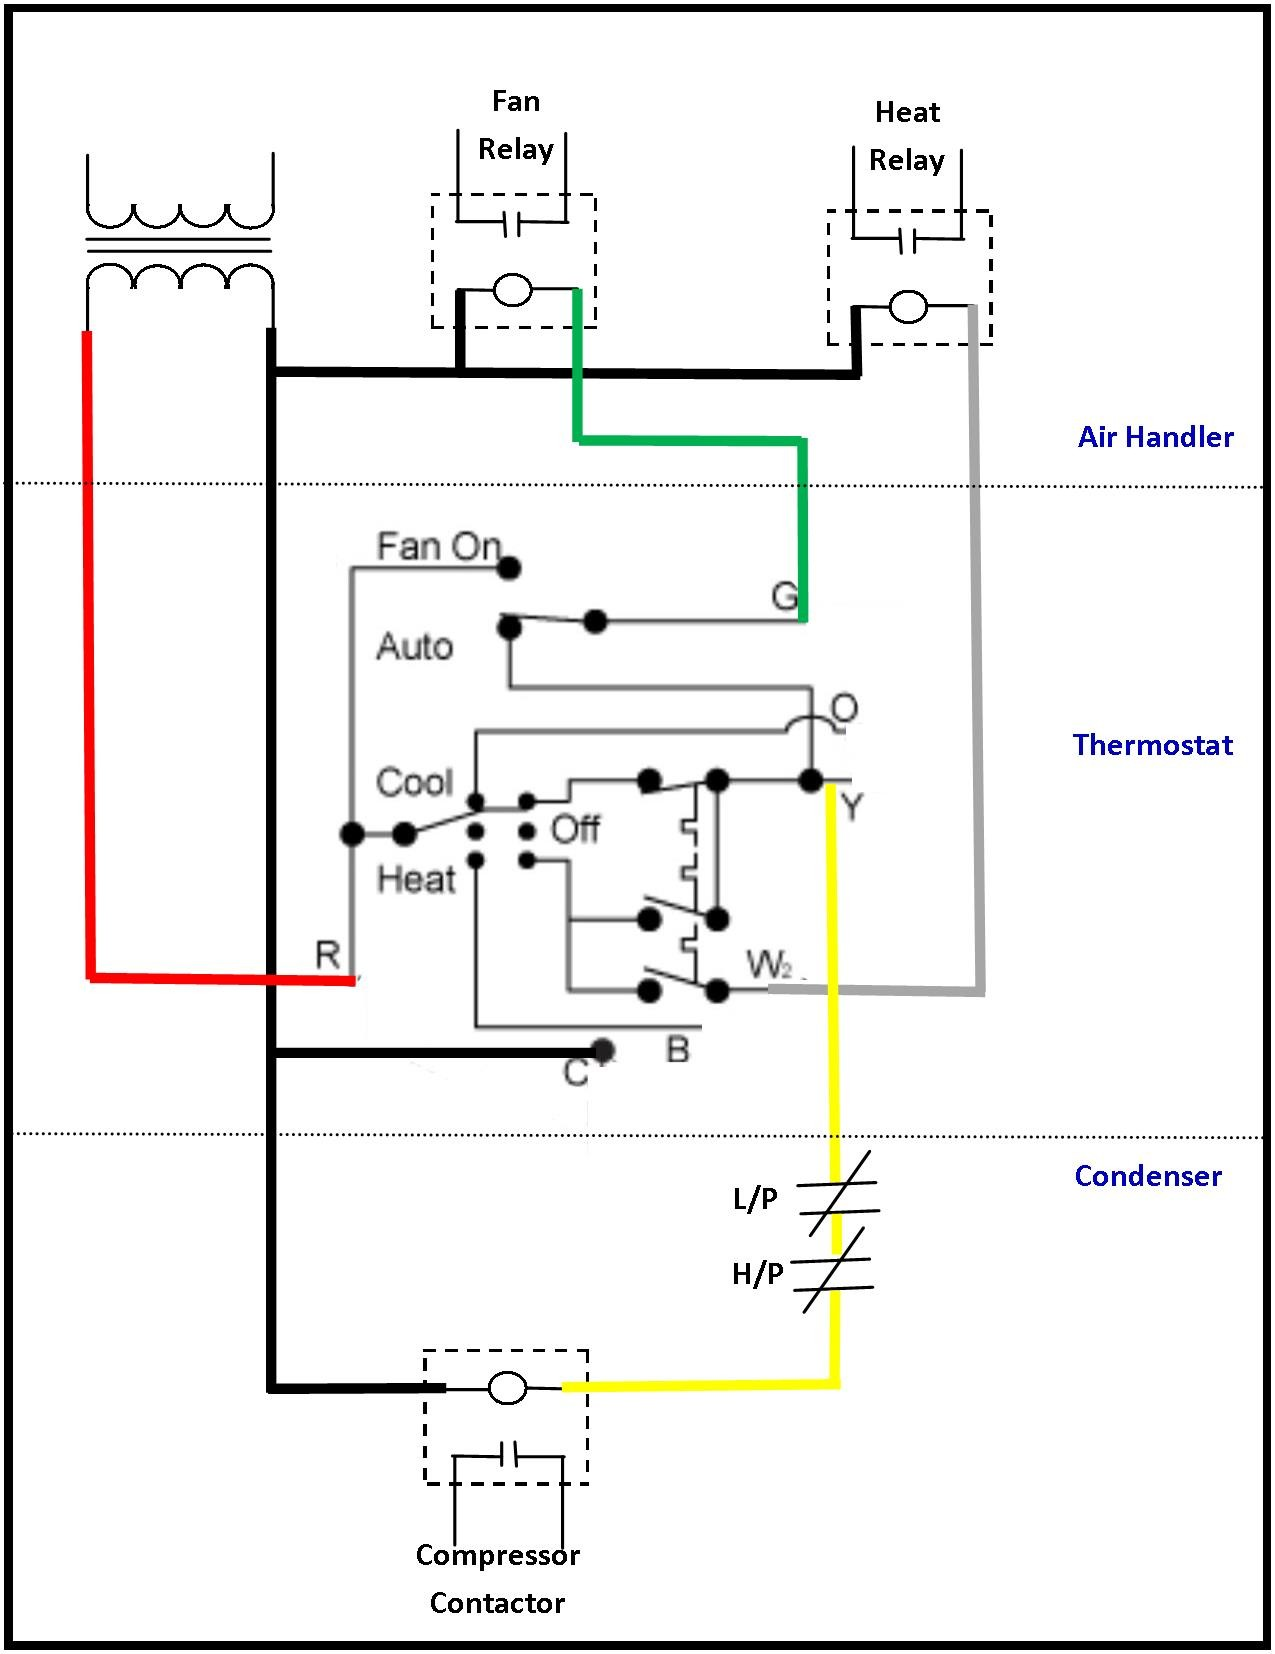 Double Pole Thermostat Wiring Diagram Baseboard Heater Heating Unique For A 120 Volt Line Voltage Of